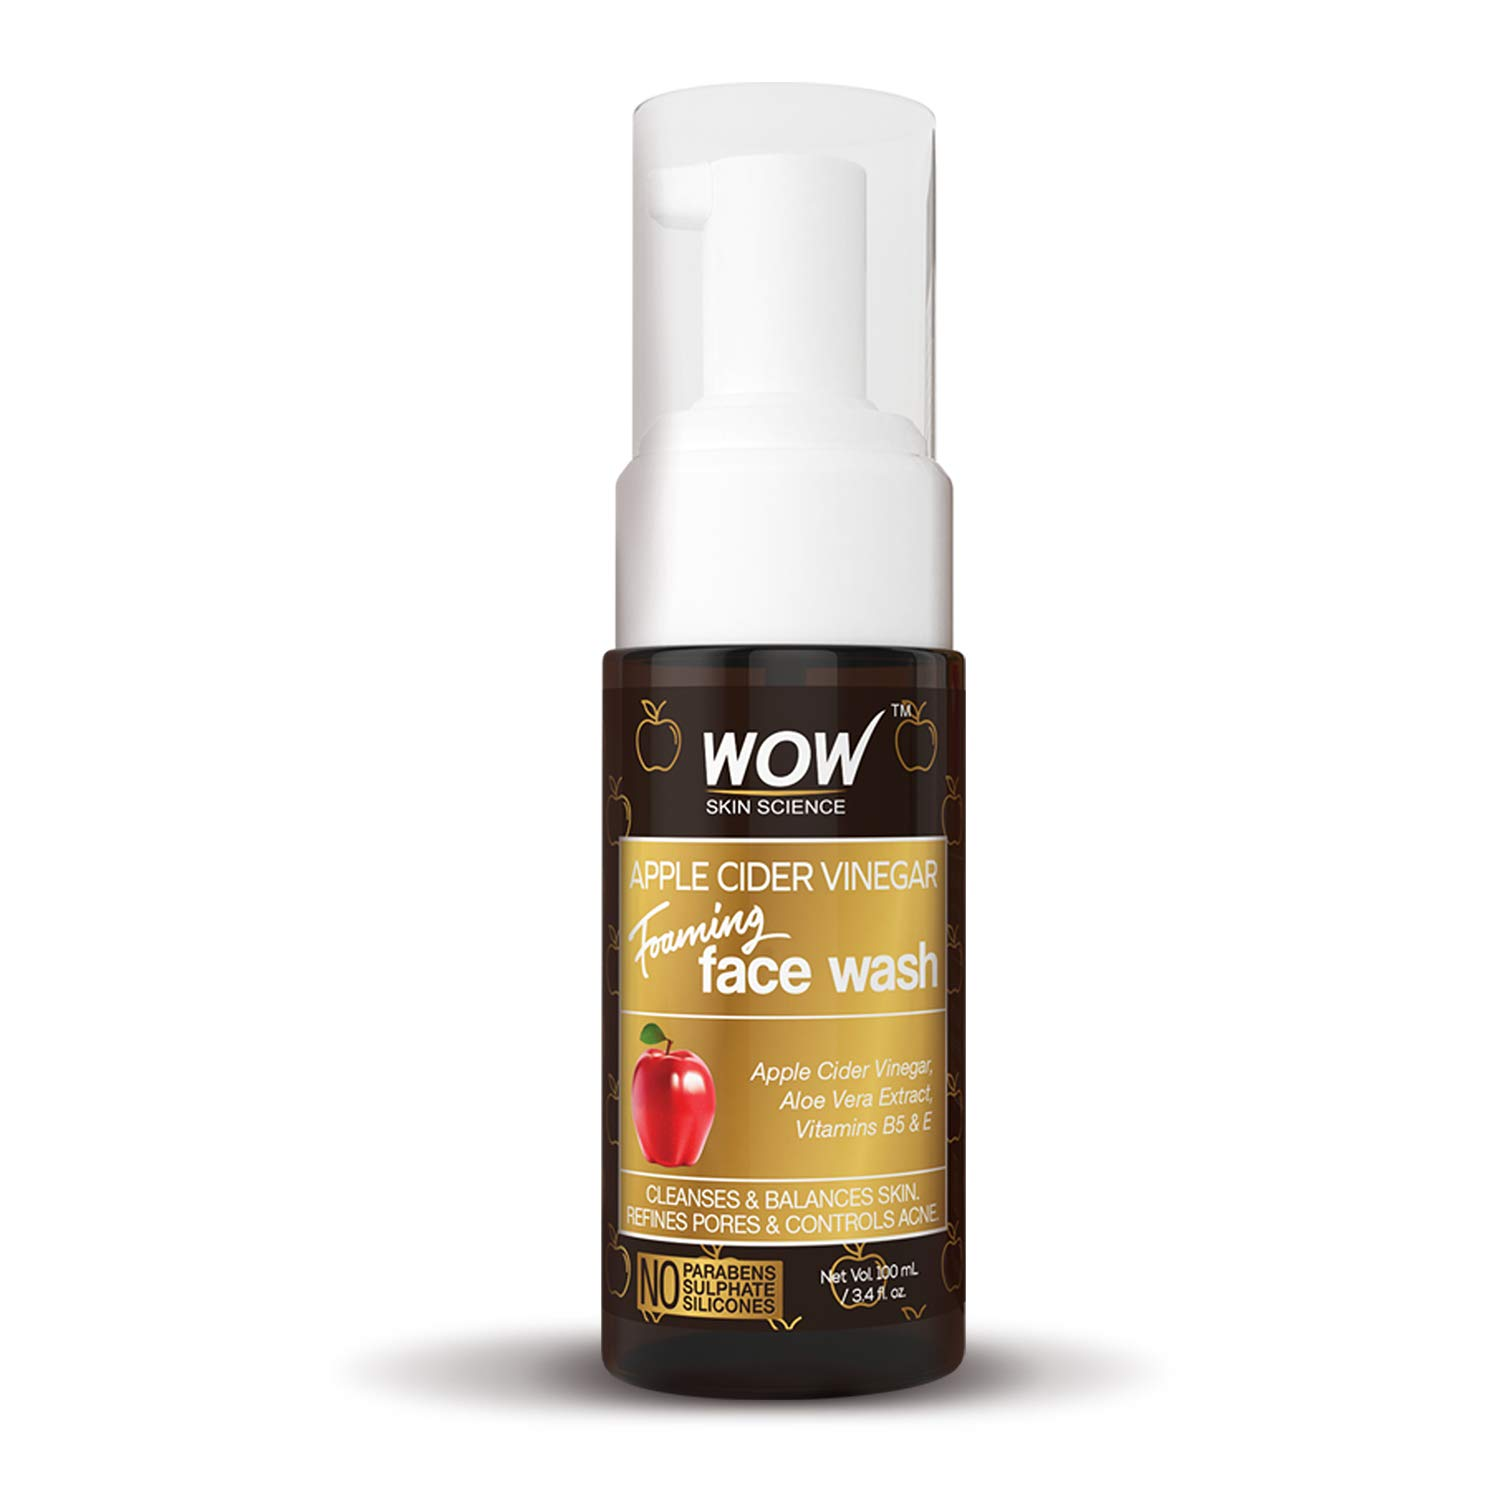 WOW Apple Cider Vinegar Foaming Face Wash Cleanser - Normal, Dry & Oily Skin - Heal, Hydrate For Soft, Clear Skin - Remove Dirt, Oil & Makeup, Reduce Acne Breakouts - Men & Women - All Ages - 100 mL by BUYWOW (Image #4)